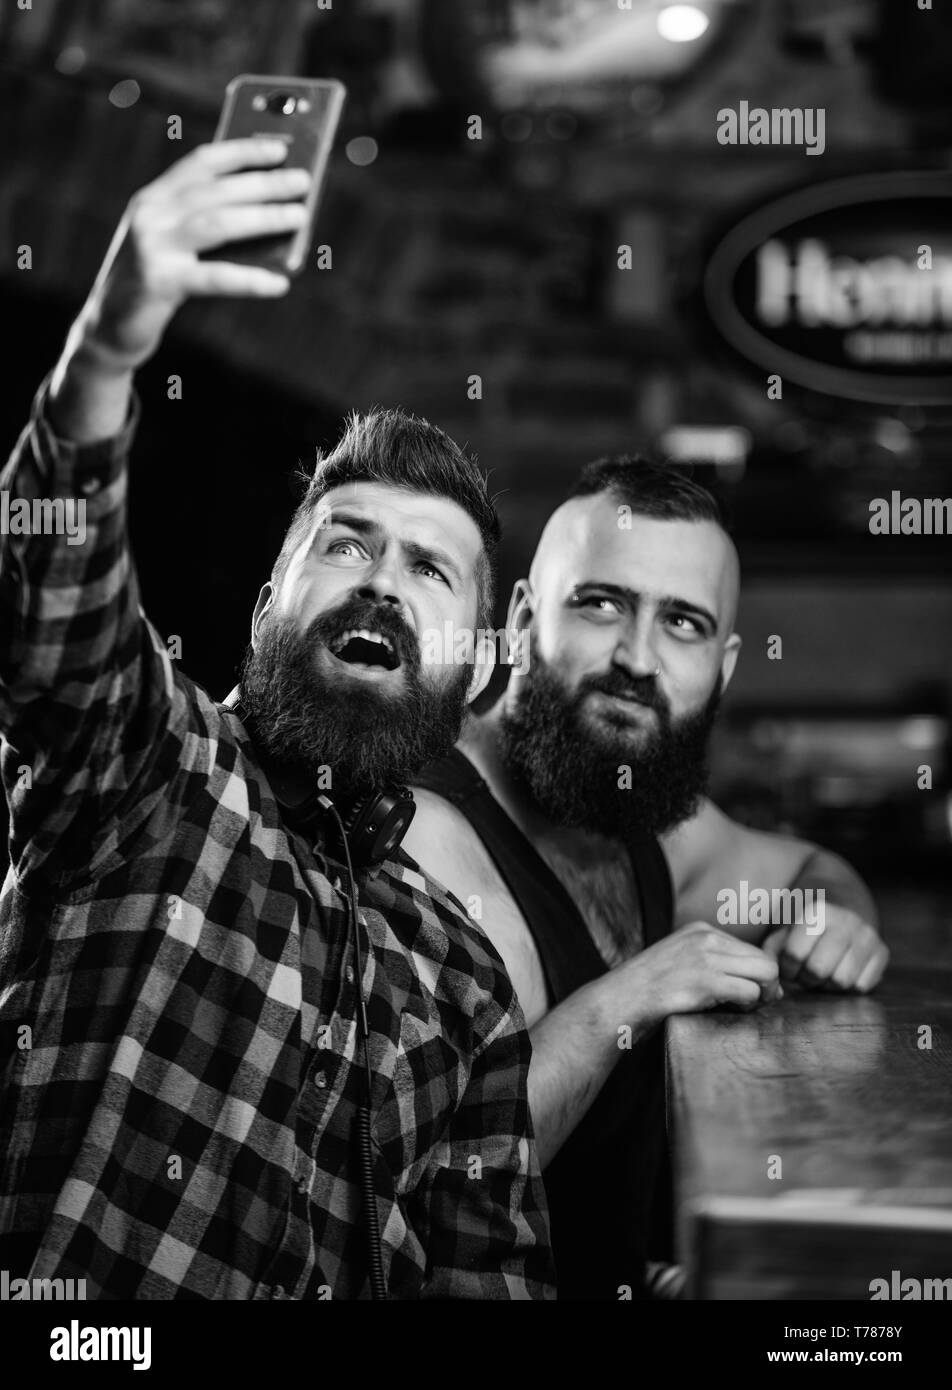 Man bearded hipster hold smartphone. Taking selfie concept. Send selfie to friends social networks. Man in bar drinking beer. Take selfie photo to remember great evening in pub. Online communication. - Stock Image